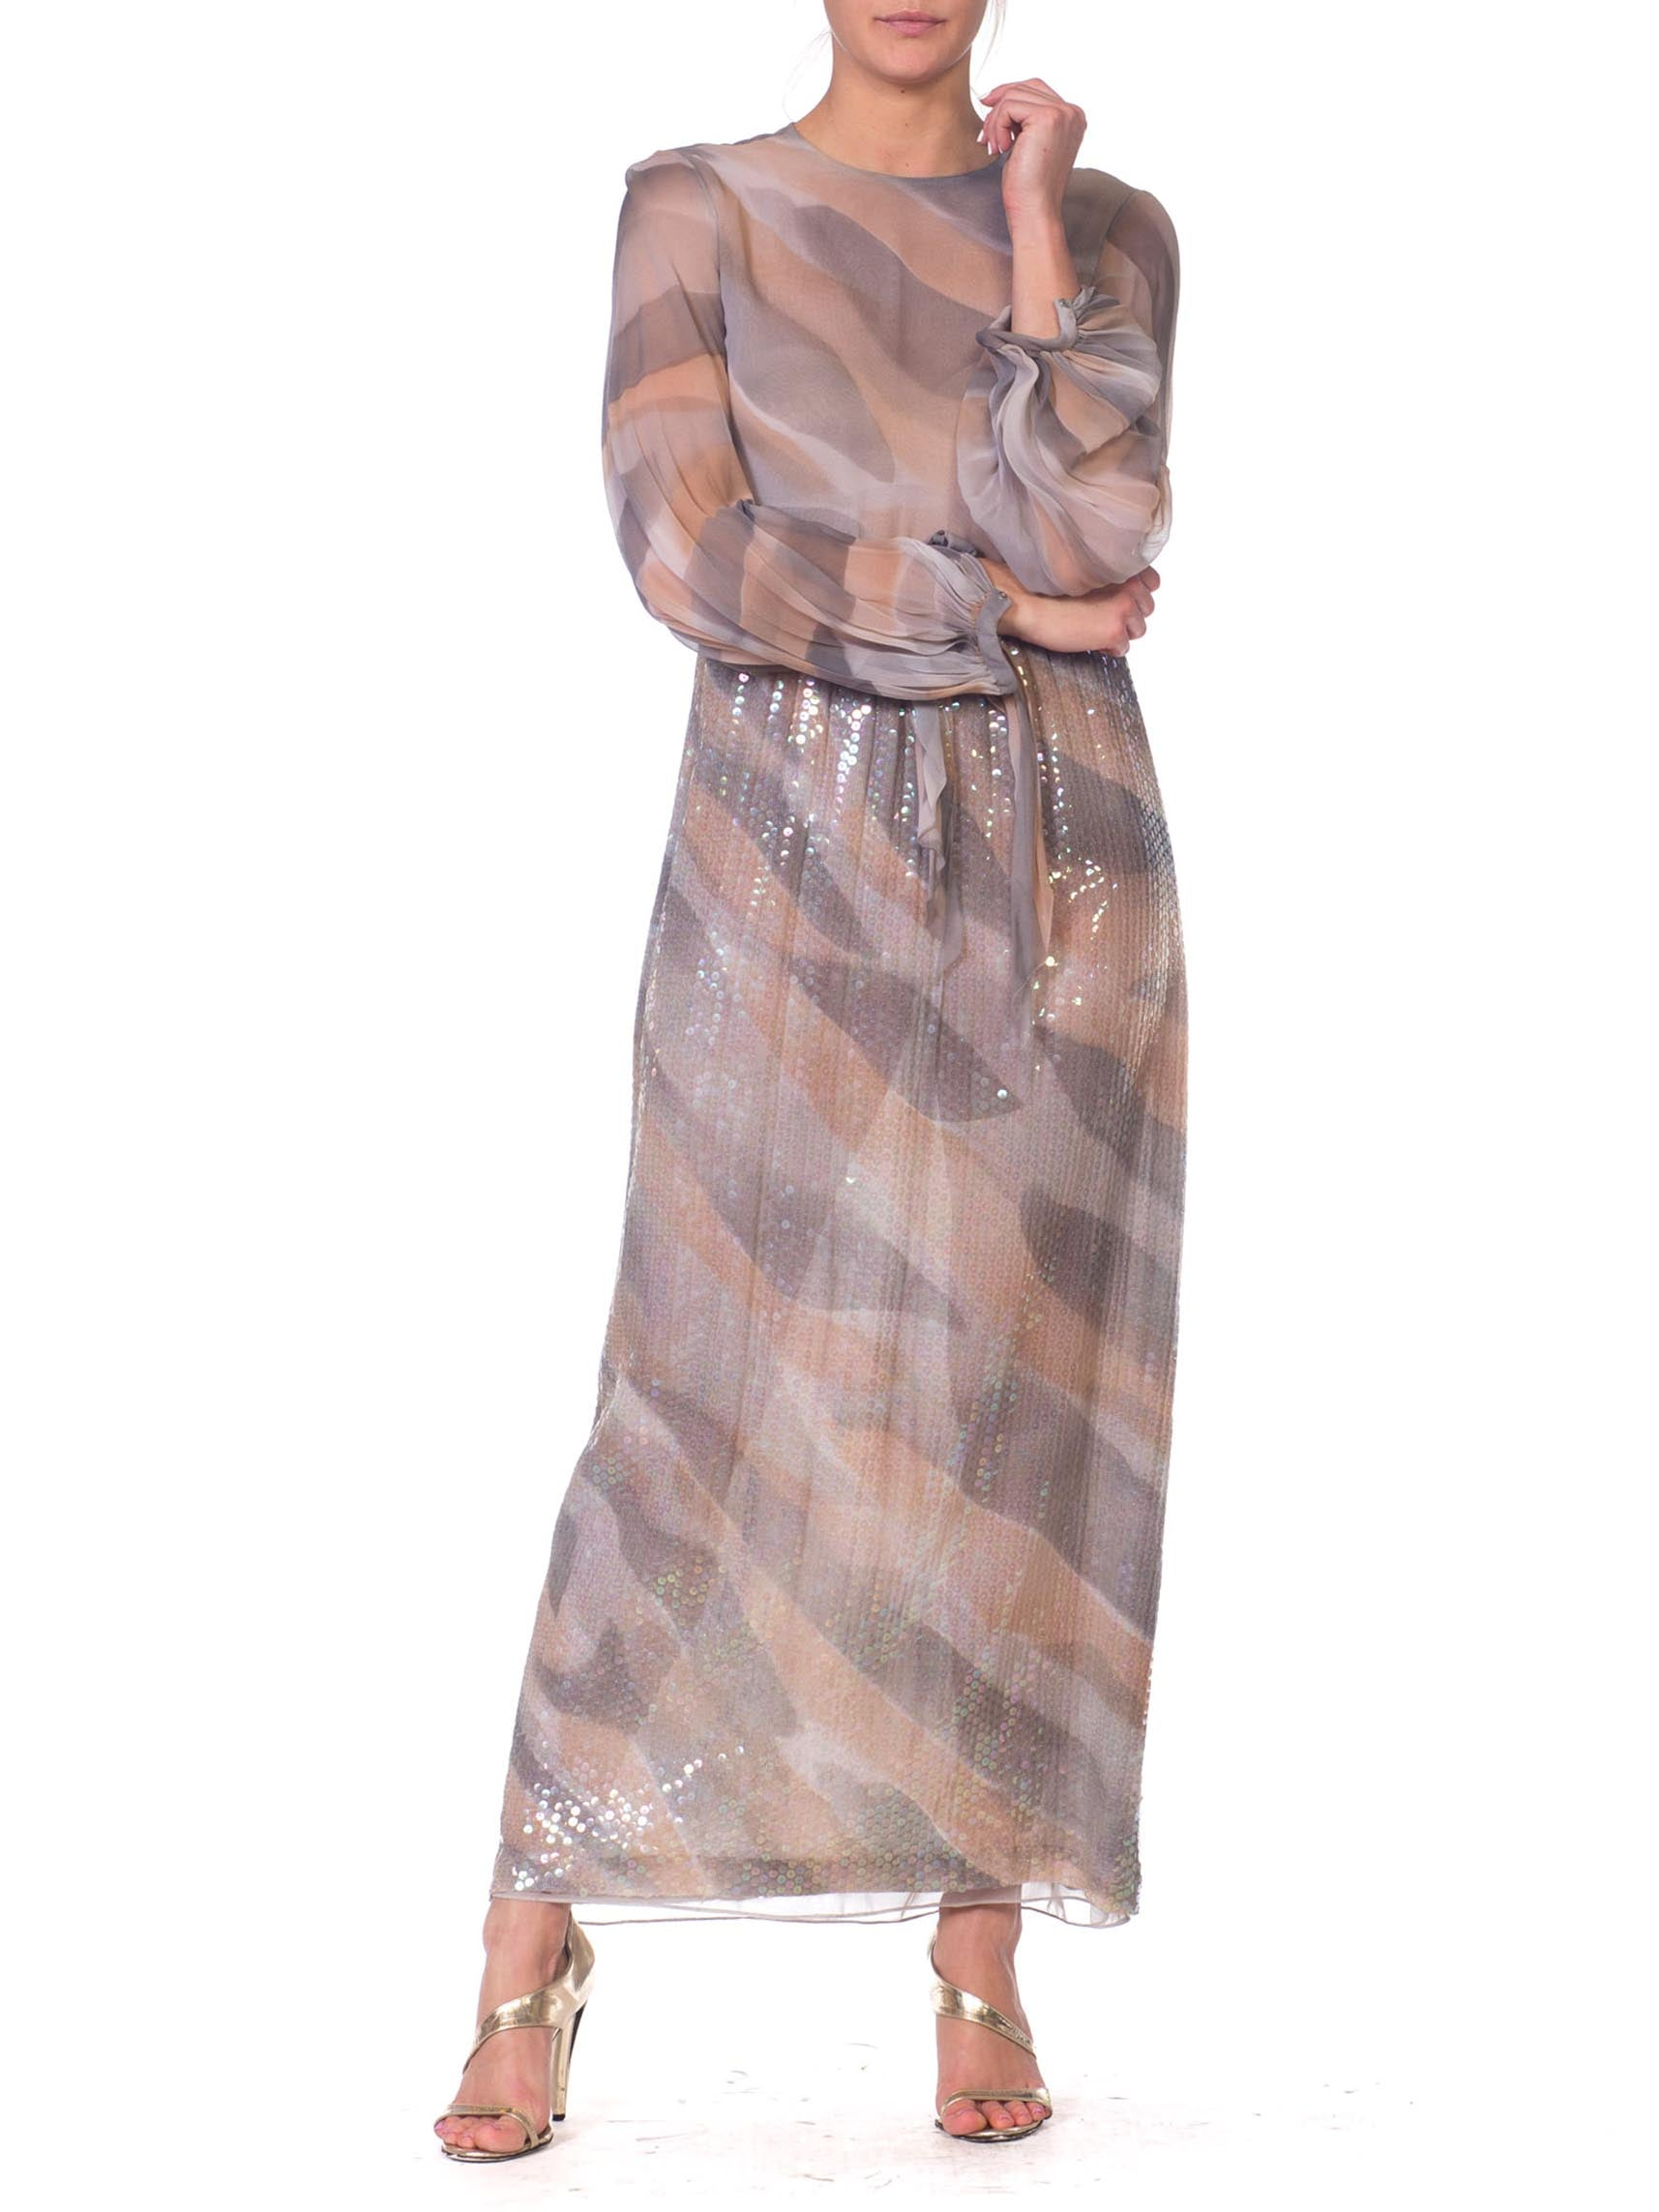 1970S HALSTON Style Oyster Grey Poly/Rayon Chiffon Sheer Sequin Cloud Print Gown With Bias Sleeves & Pockets